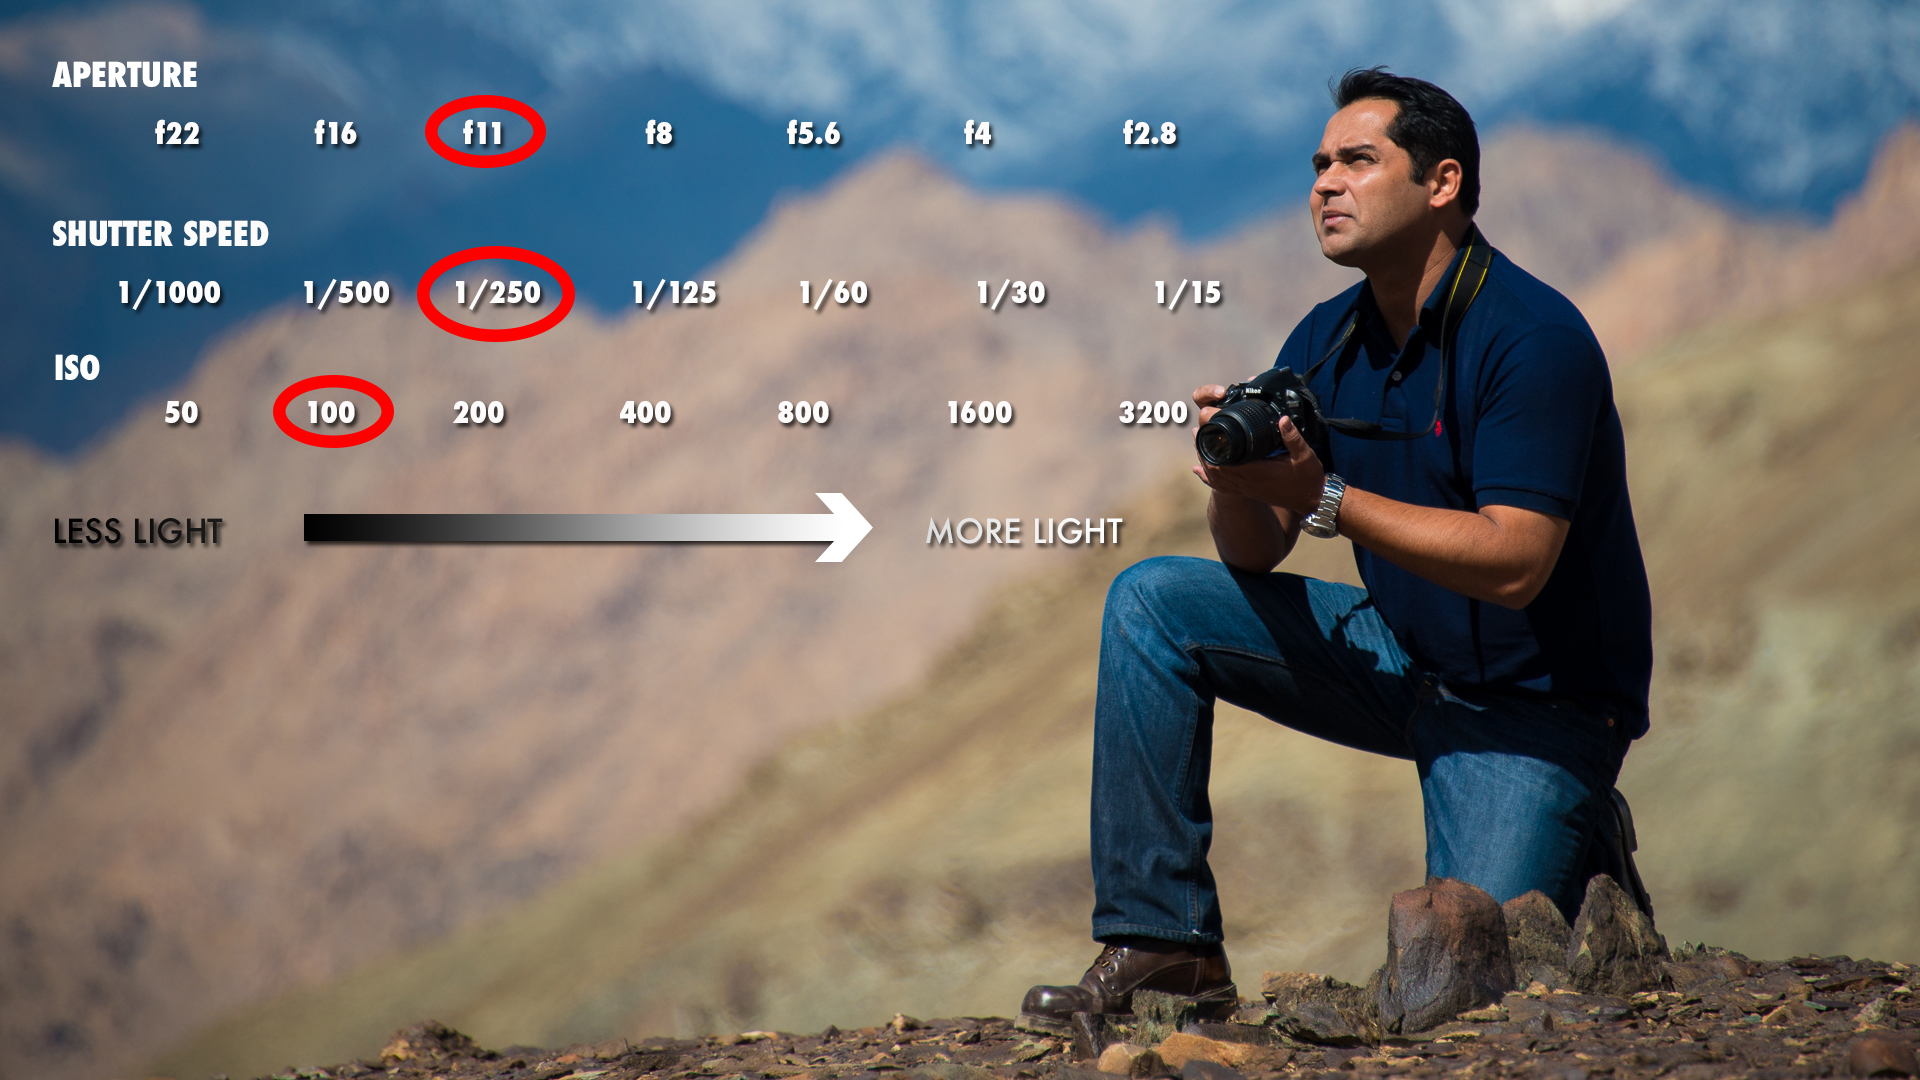 iso shutter speed and aperture relationship